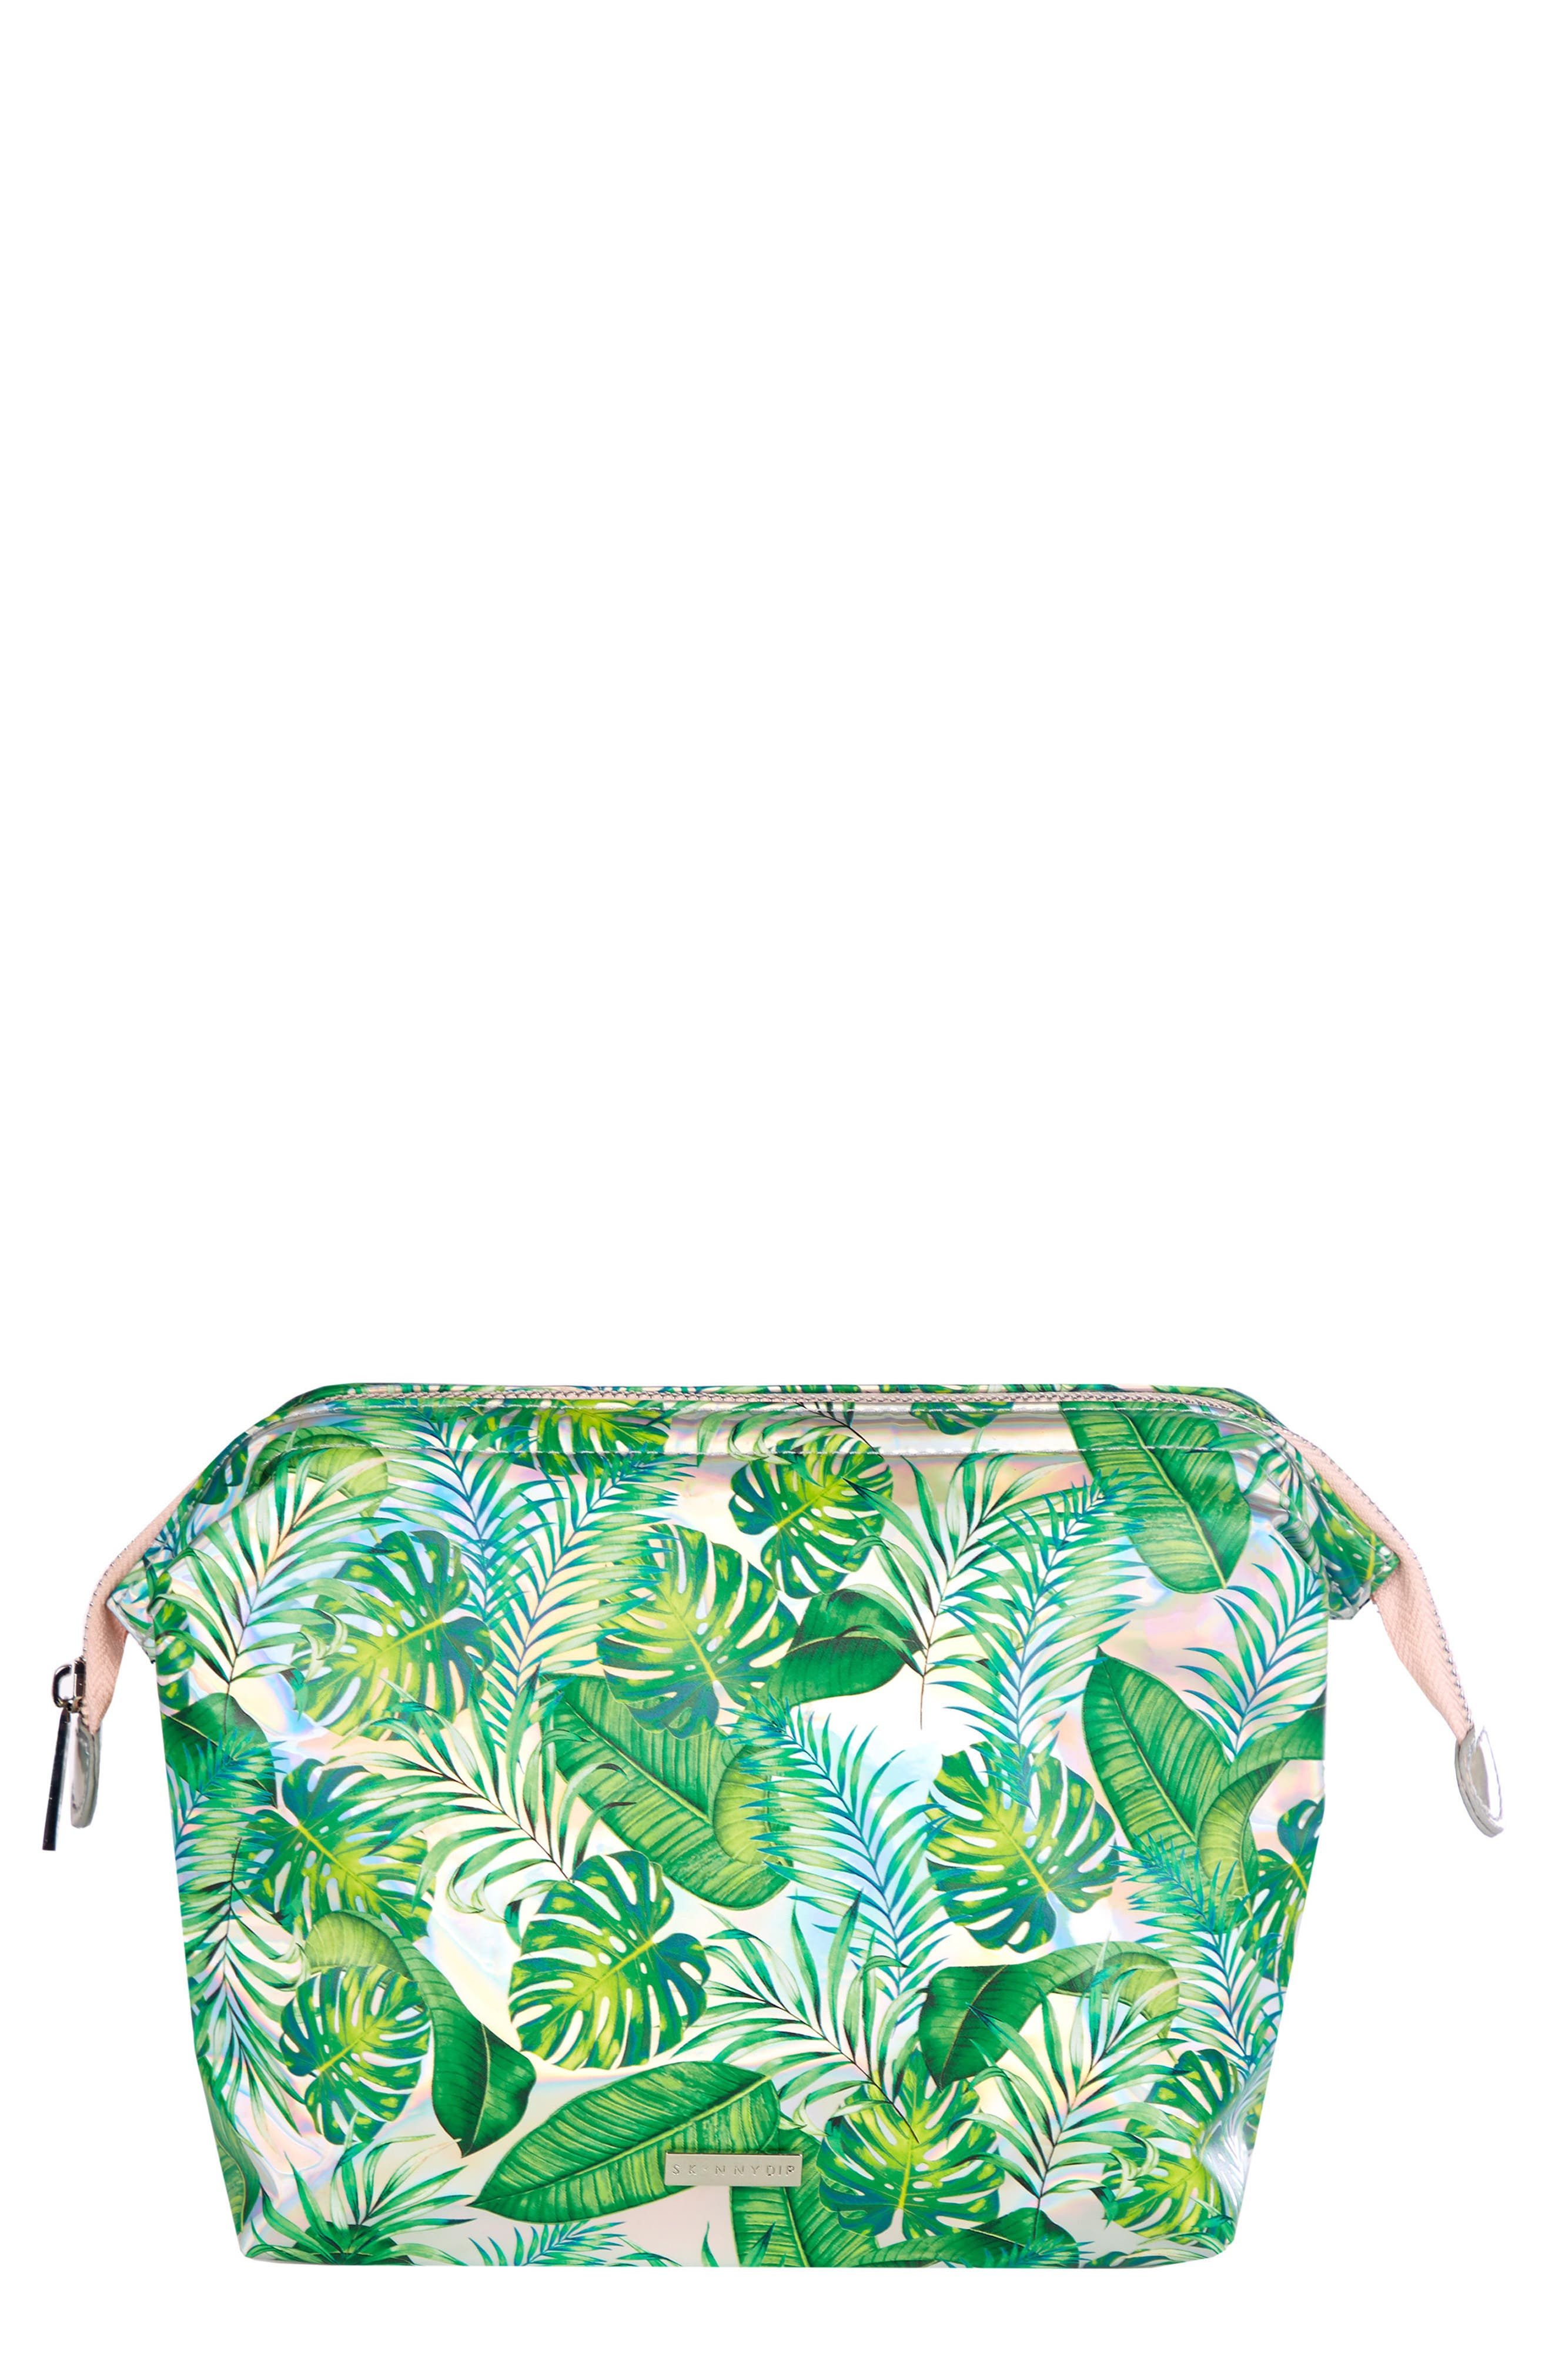 Skinny Dip Dominica Large Cosmetics Case